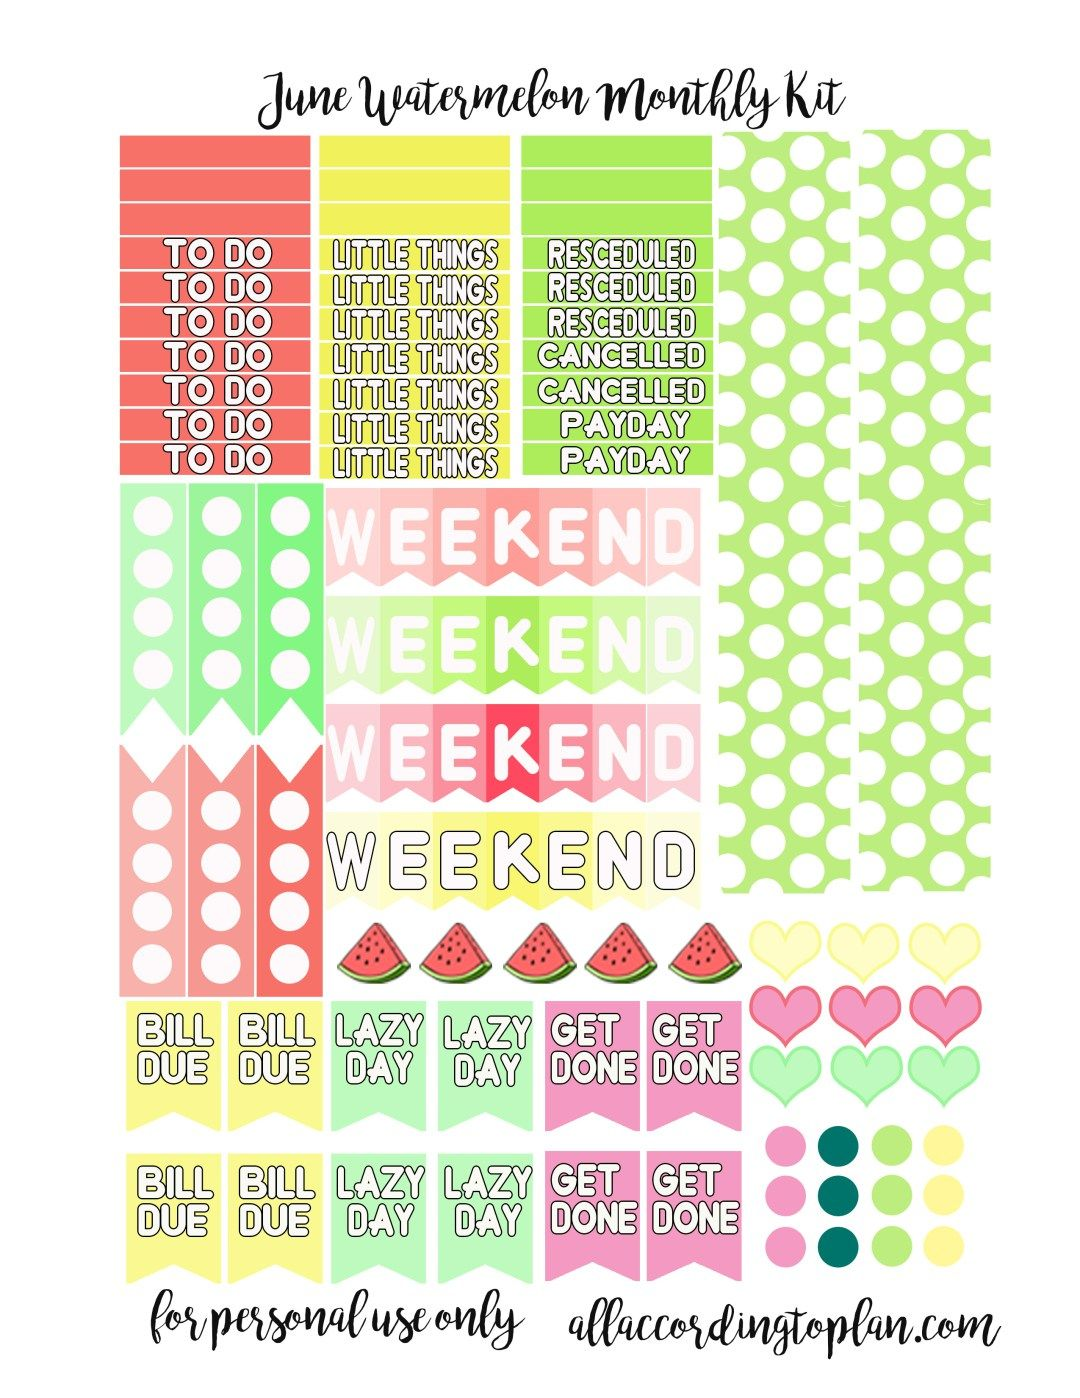 Free Watermelon Planner Stickers - June Kit - All According to Plan